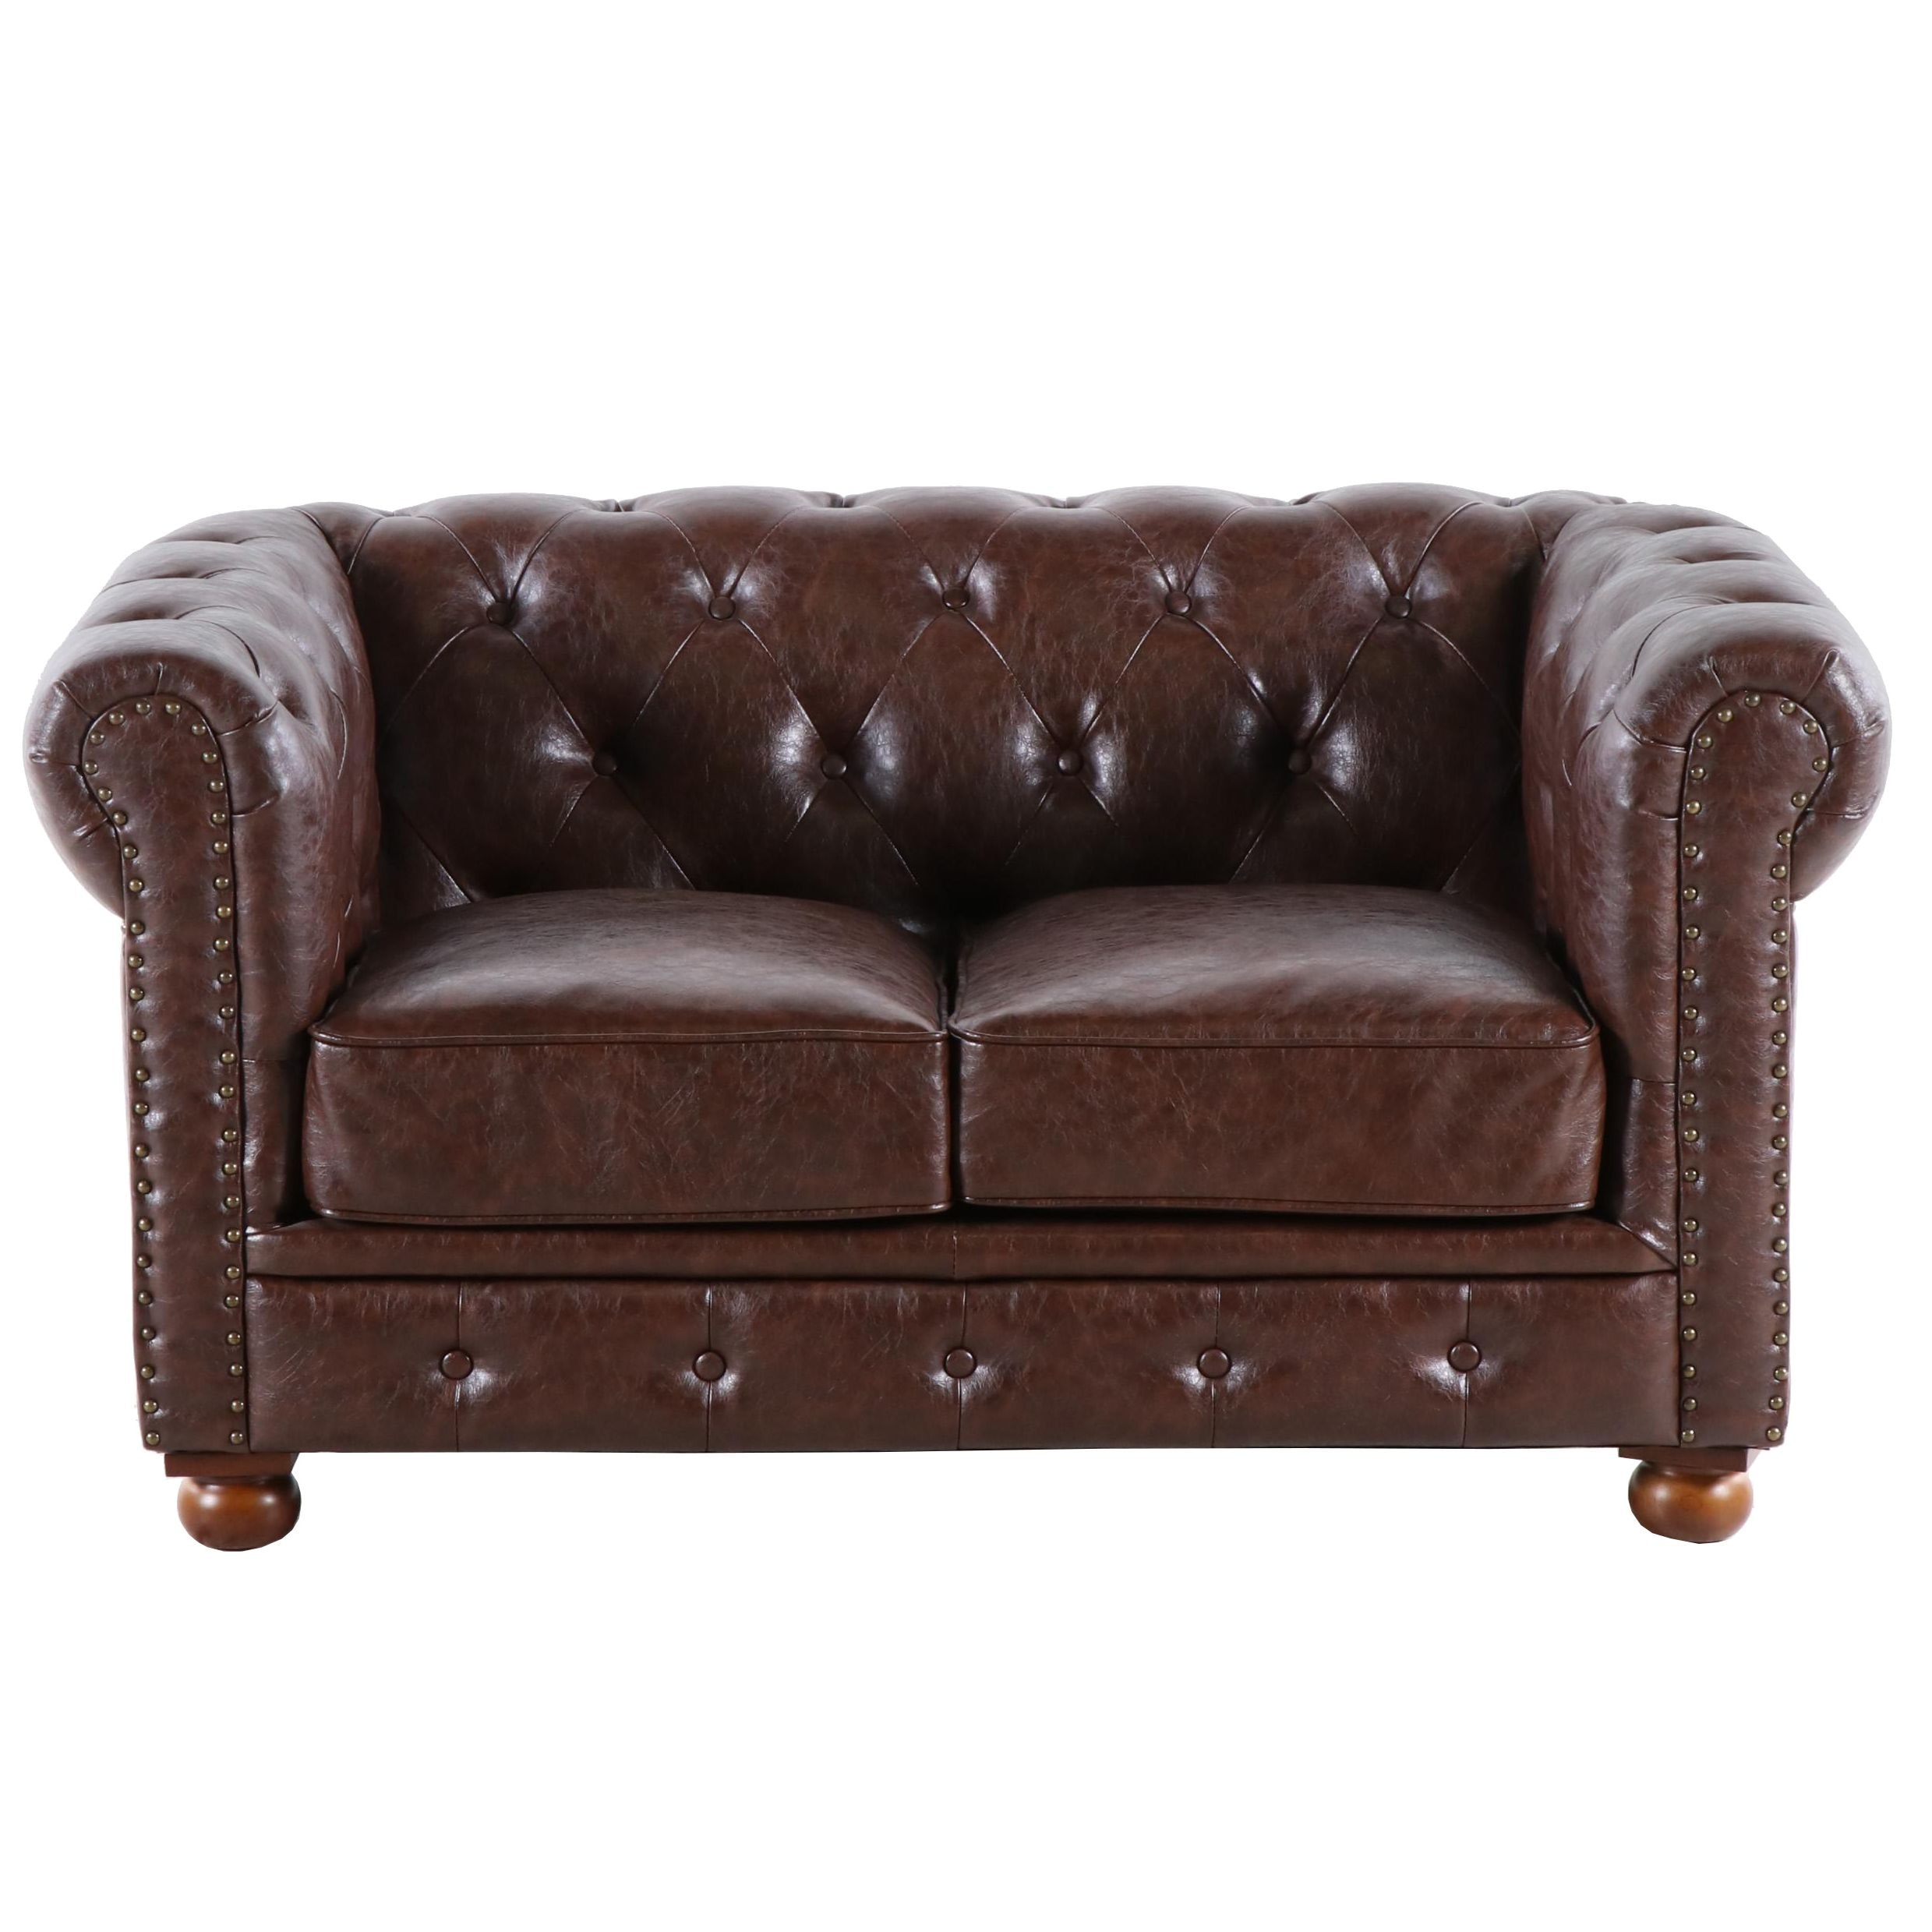 Chesterfield Faux Leather Loveseat, Contemporary